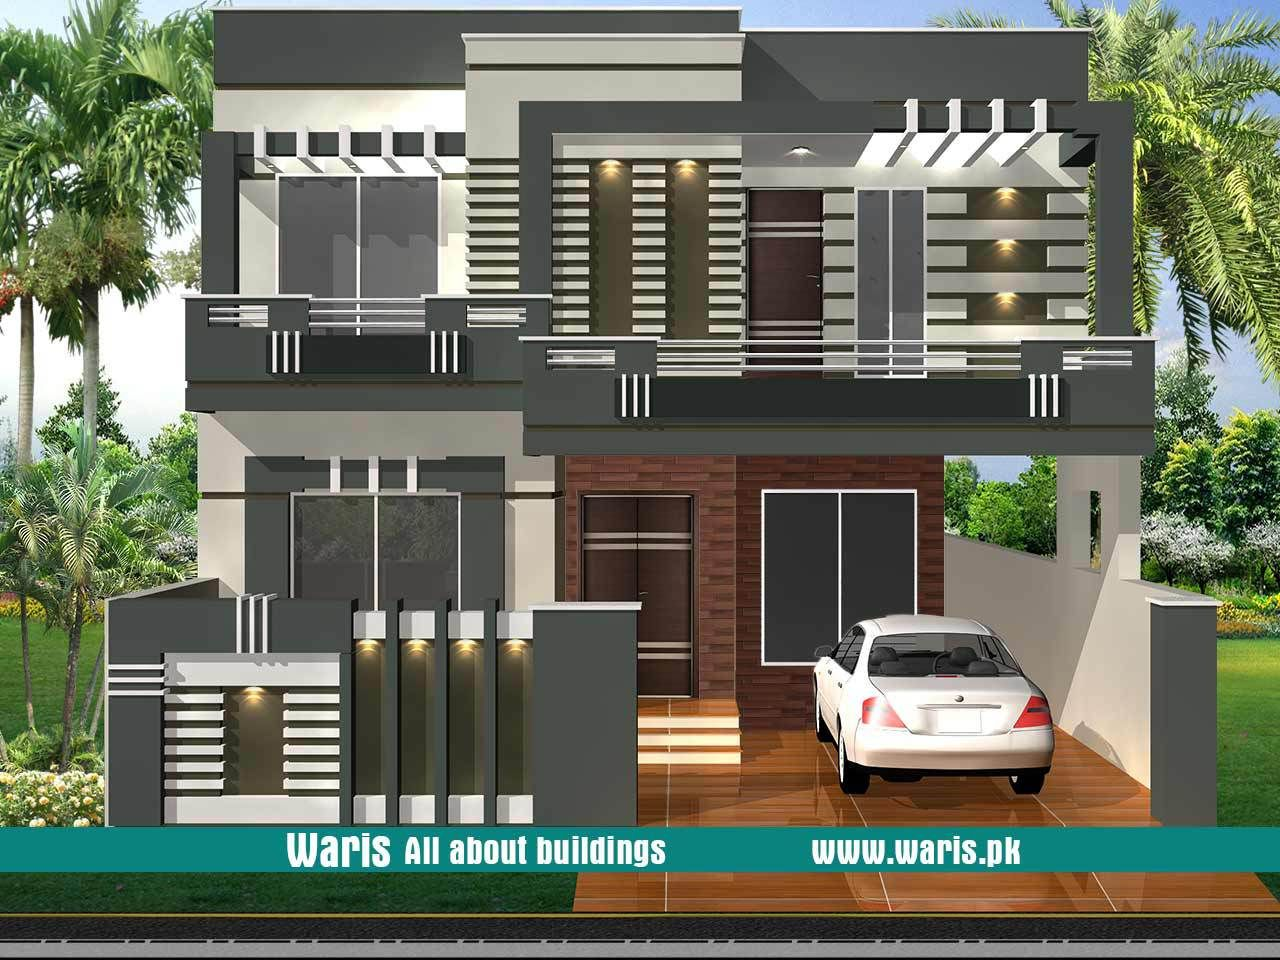 House front elevation design view interior images in pakistan marla kanal designs ideas pictures waris also best designing architecture home plans rh pinterest